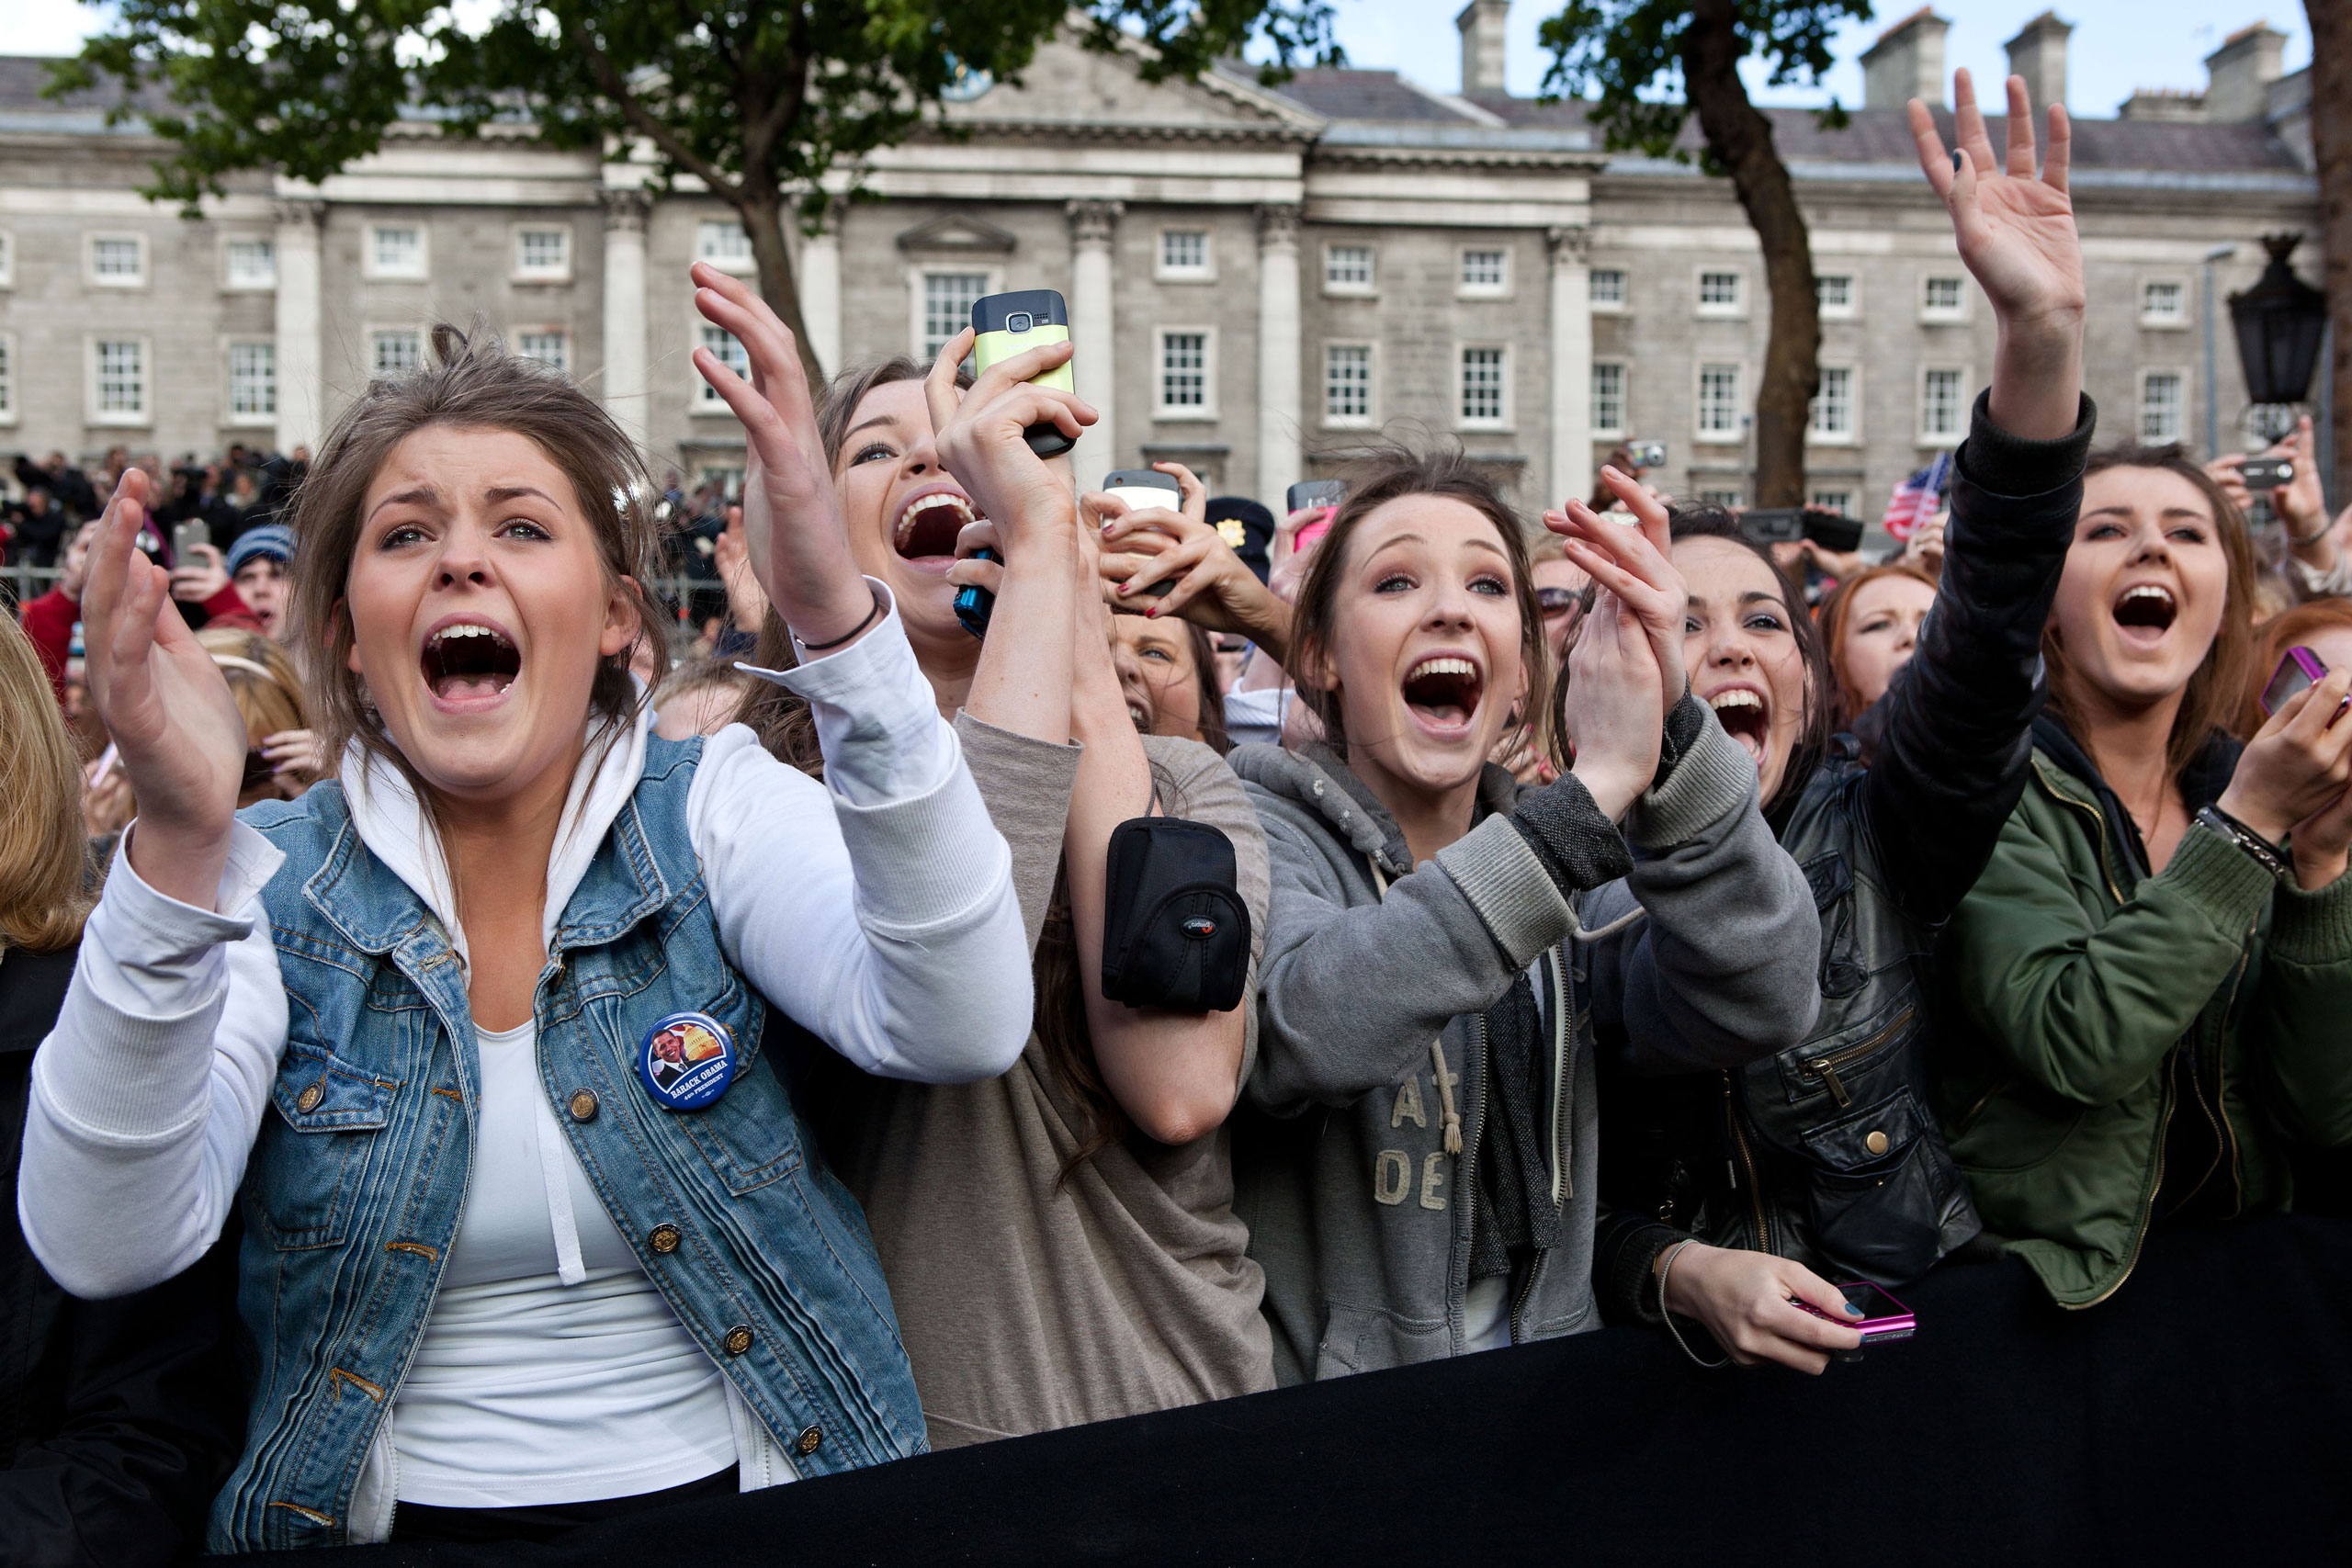 I can still hear these Irish girls screaming, 'Barack! Barack! Michelle! Michelle!' It reminded me of the old black and white video footage of American girls screaming at the Beatles in concert. These girls were cheering as the President and First Lady took the stage at the College Green in Dublin, Ireland,  May 23, 2011.